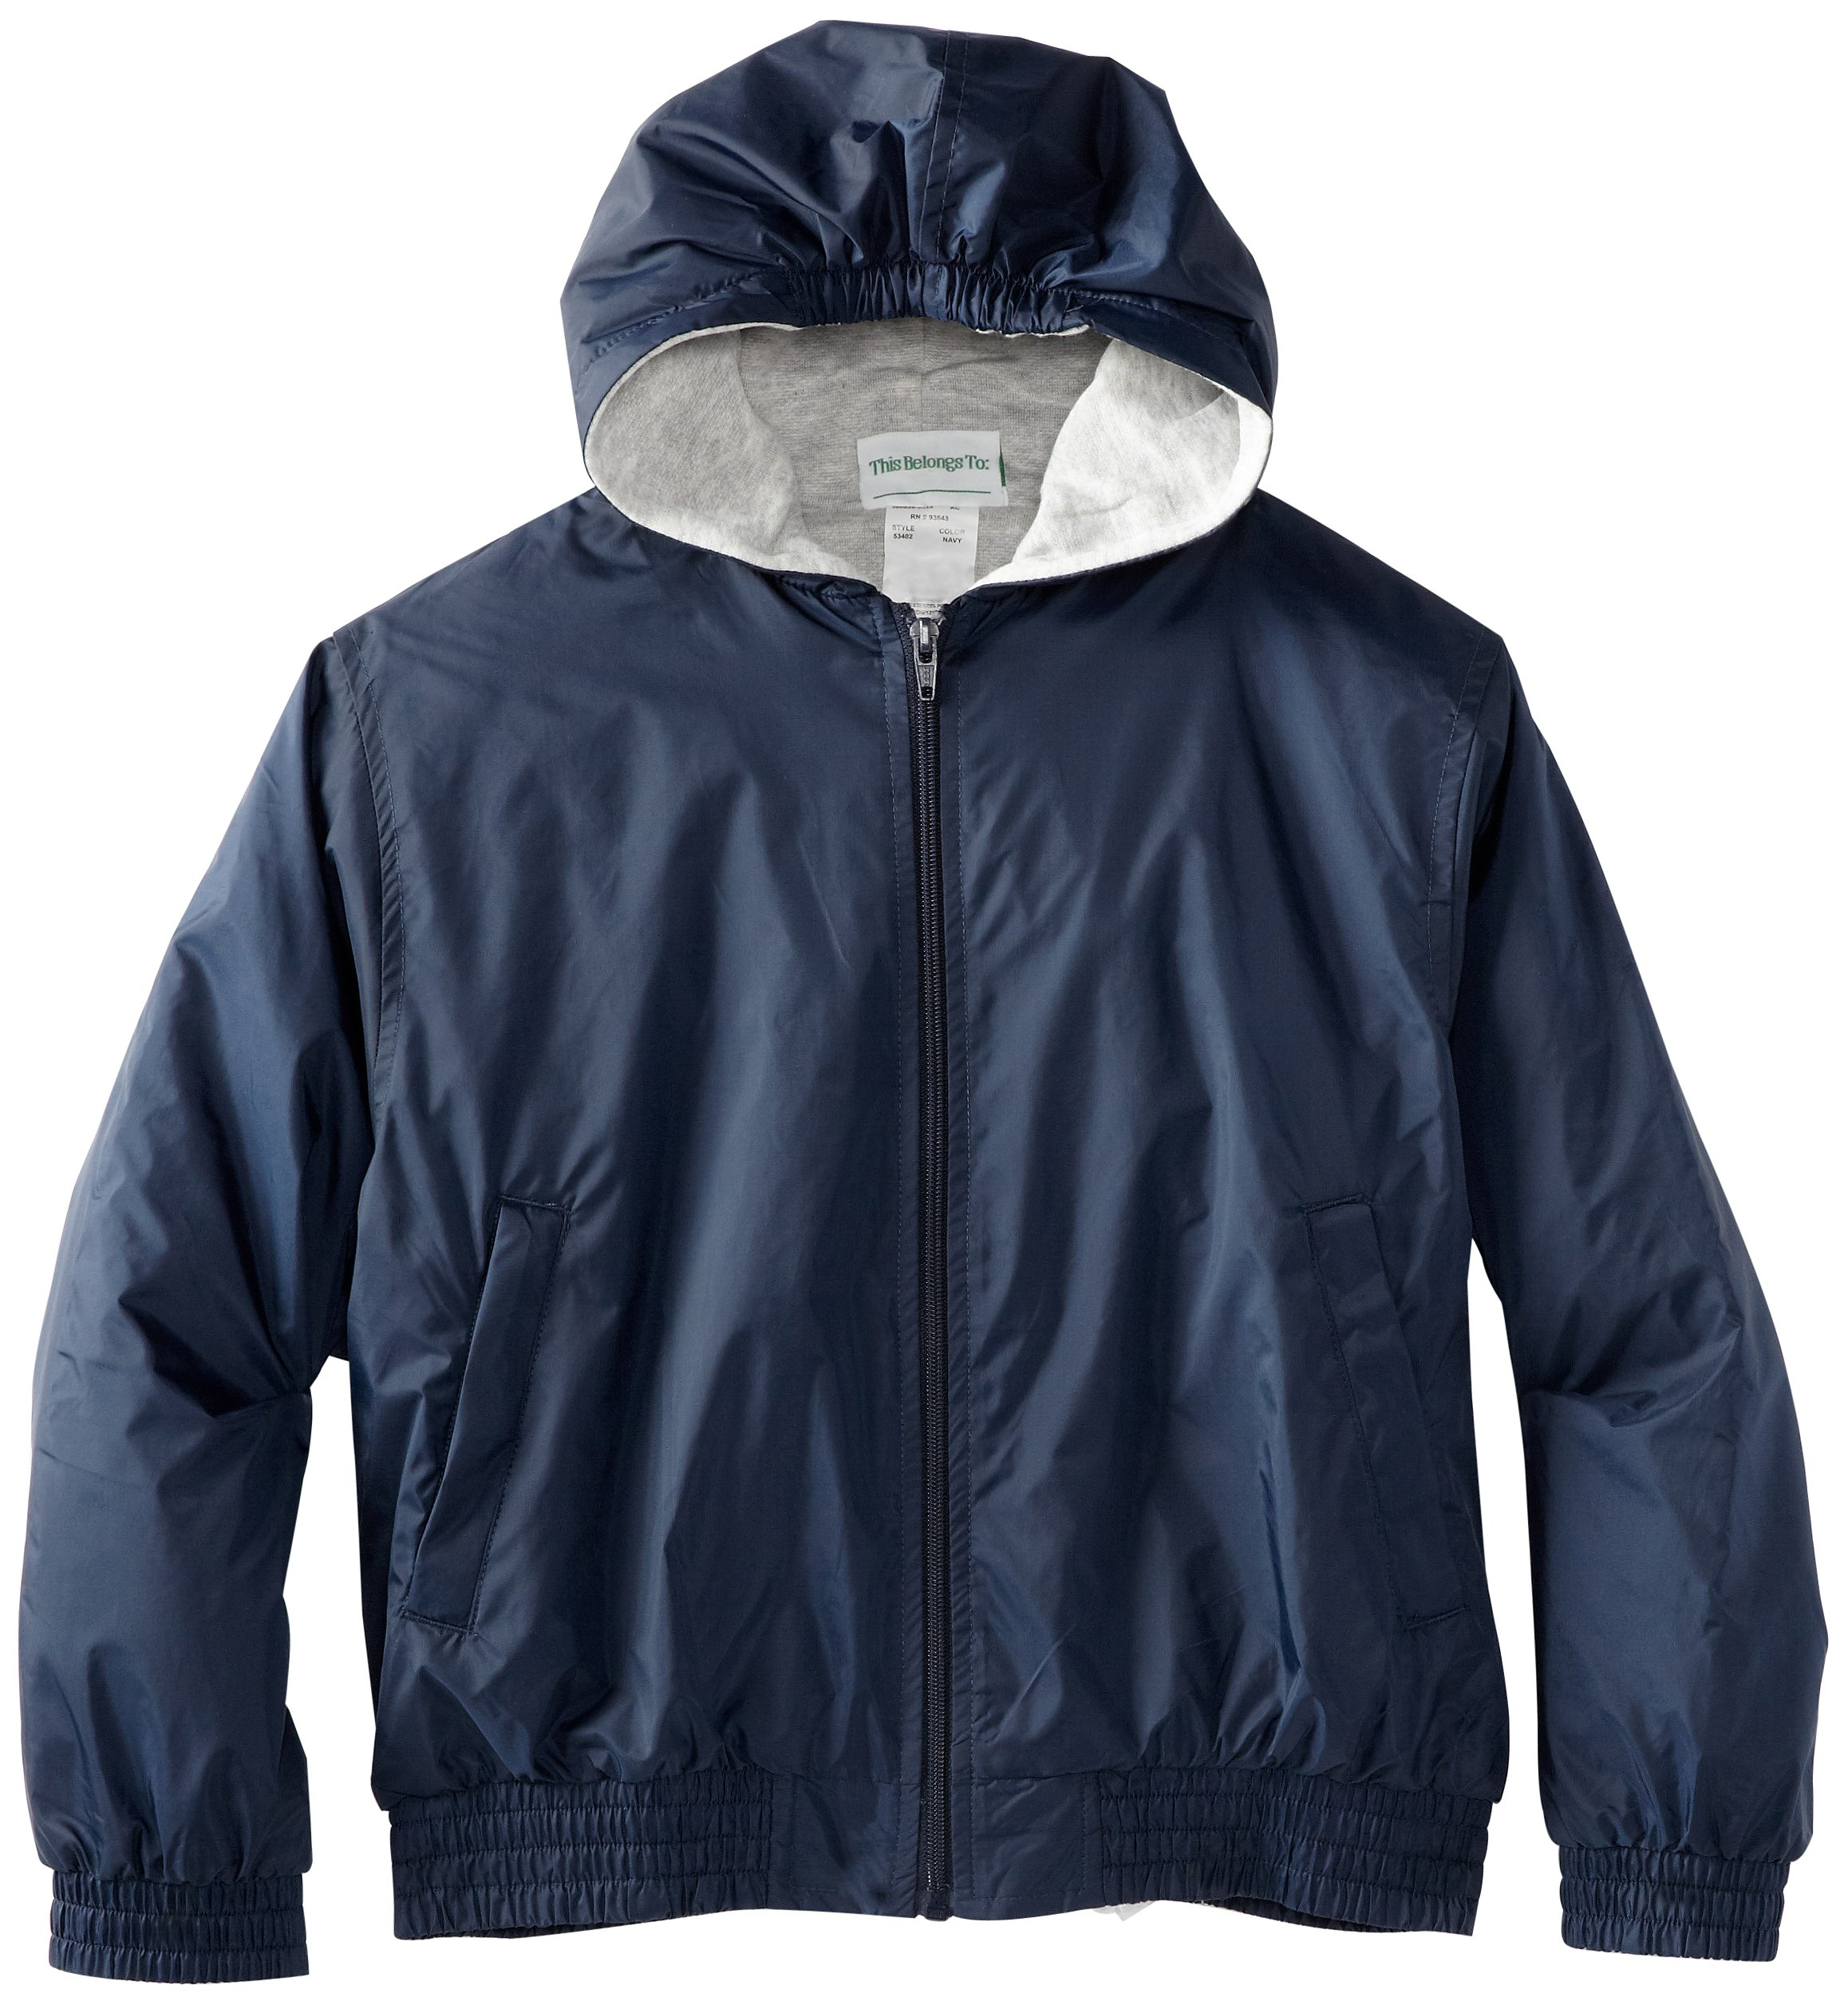 CLASSROOM Little Boys' Uniform Lined Bomber Jacket, Navy, Small